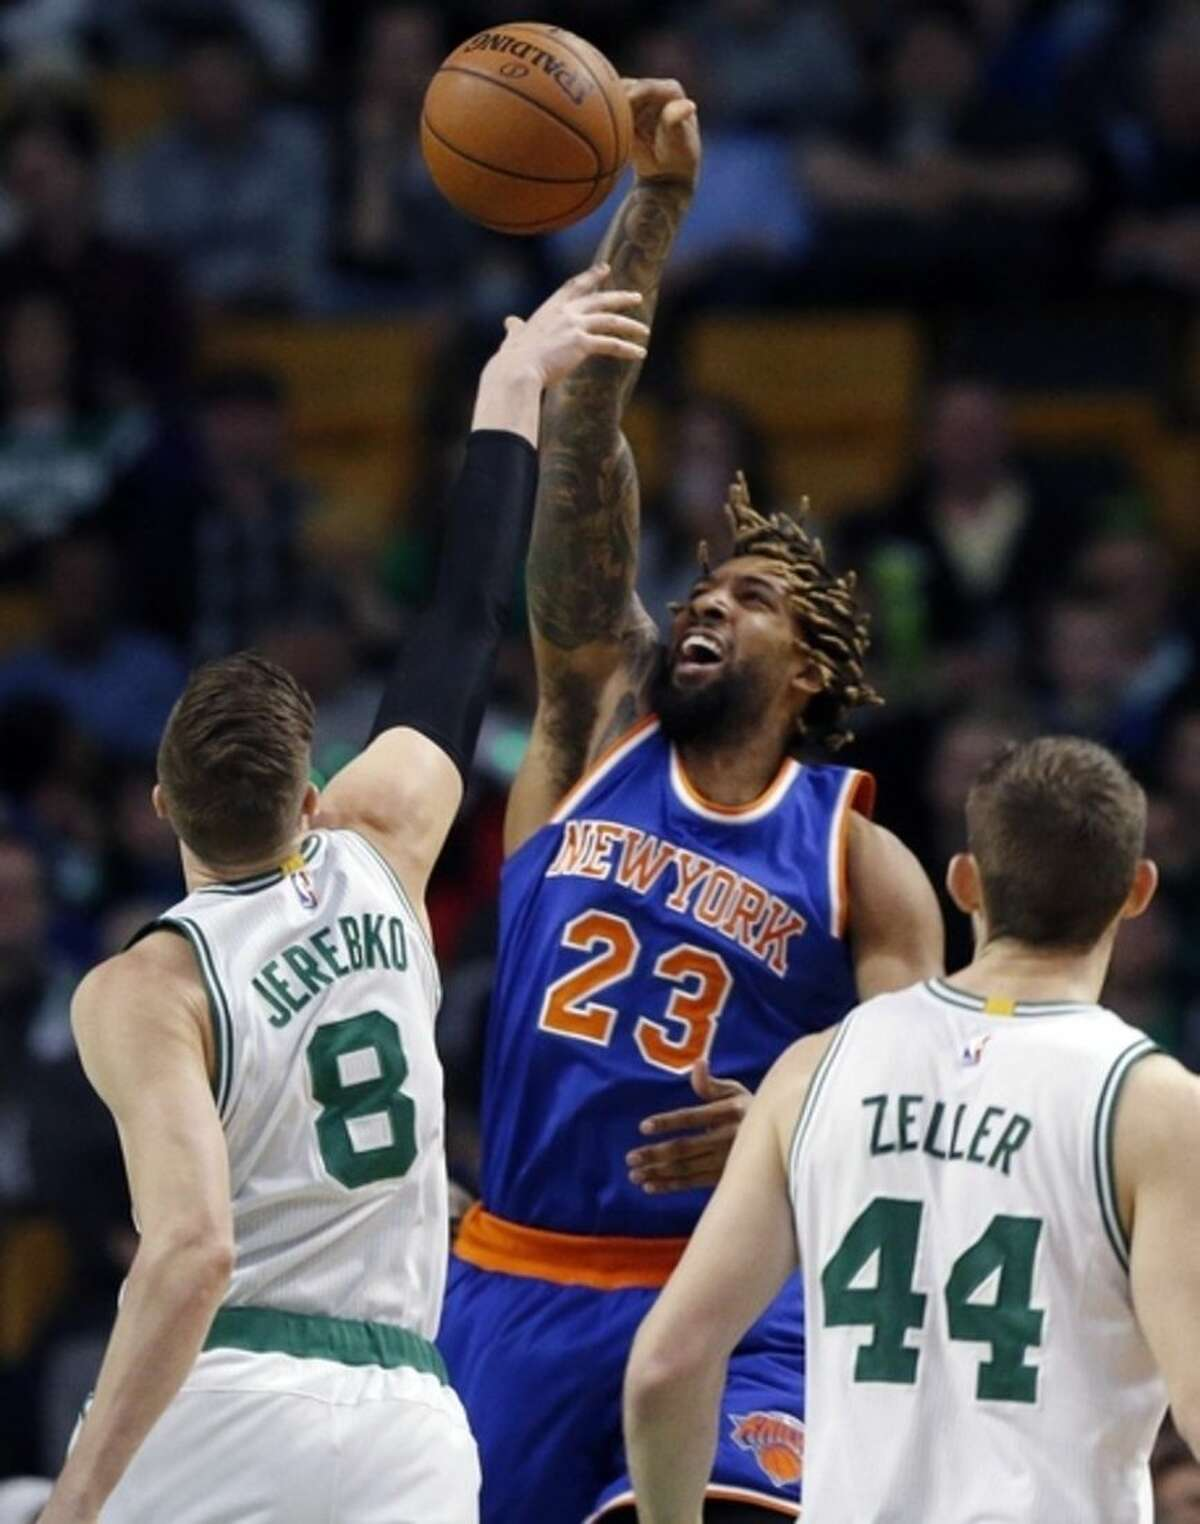 Boston Celtics' Jonas Jerebko (8) blocks a shot by New York Knicks' Derrick Williams (23) during the second quarter of an NBA basketball game in Boston, Friday, March 4, 2016. (AP Photo/Michael Dwyer)